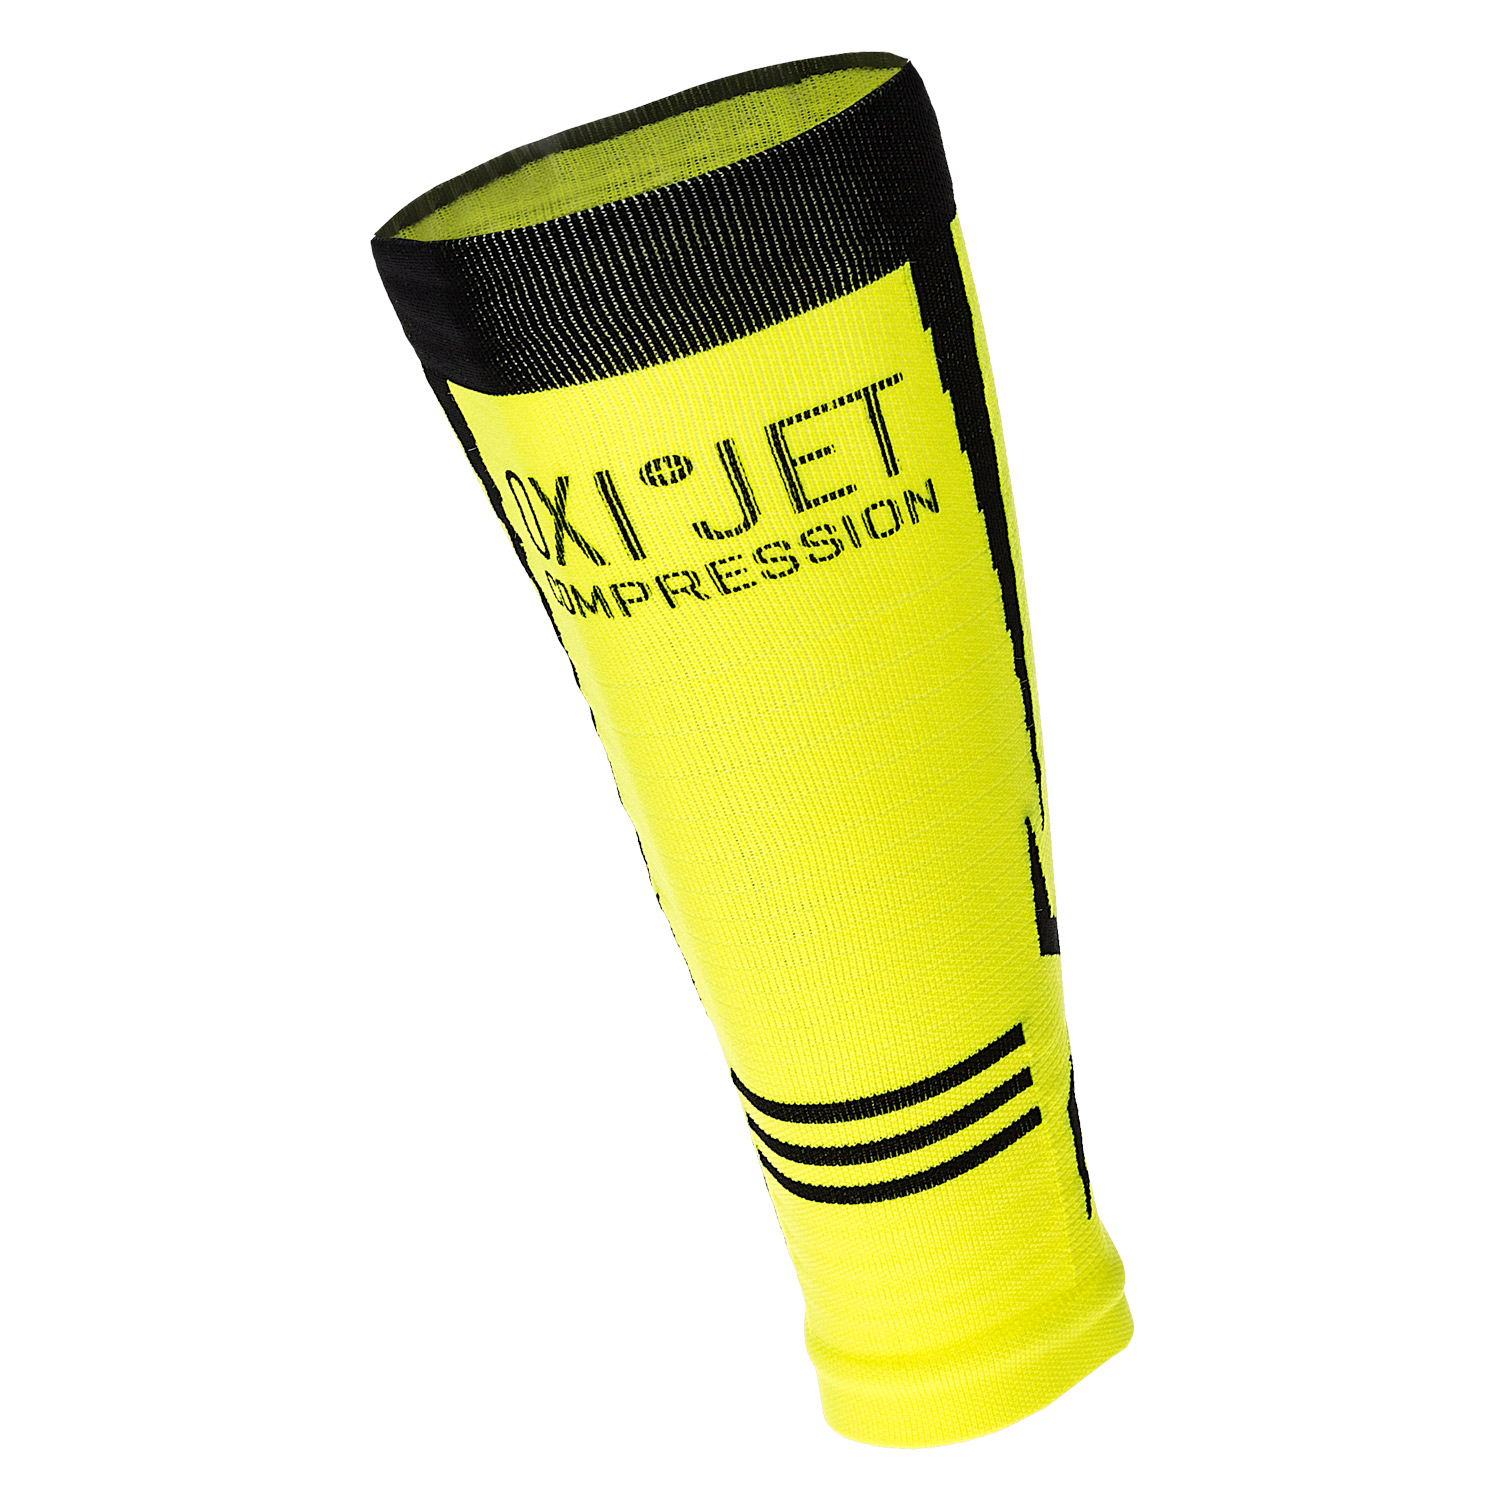 Mico Oxi-Jet Compression Calf Sleeve - Yellow/Black